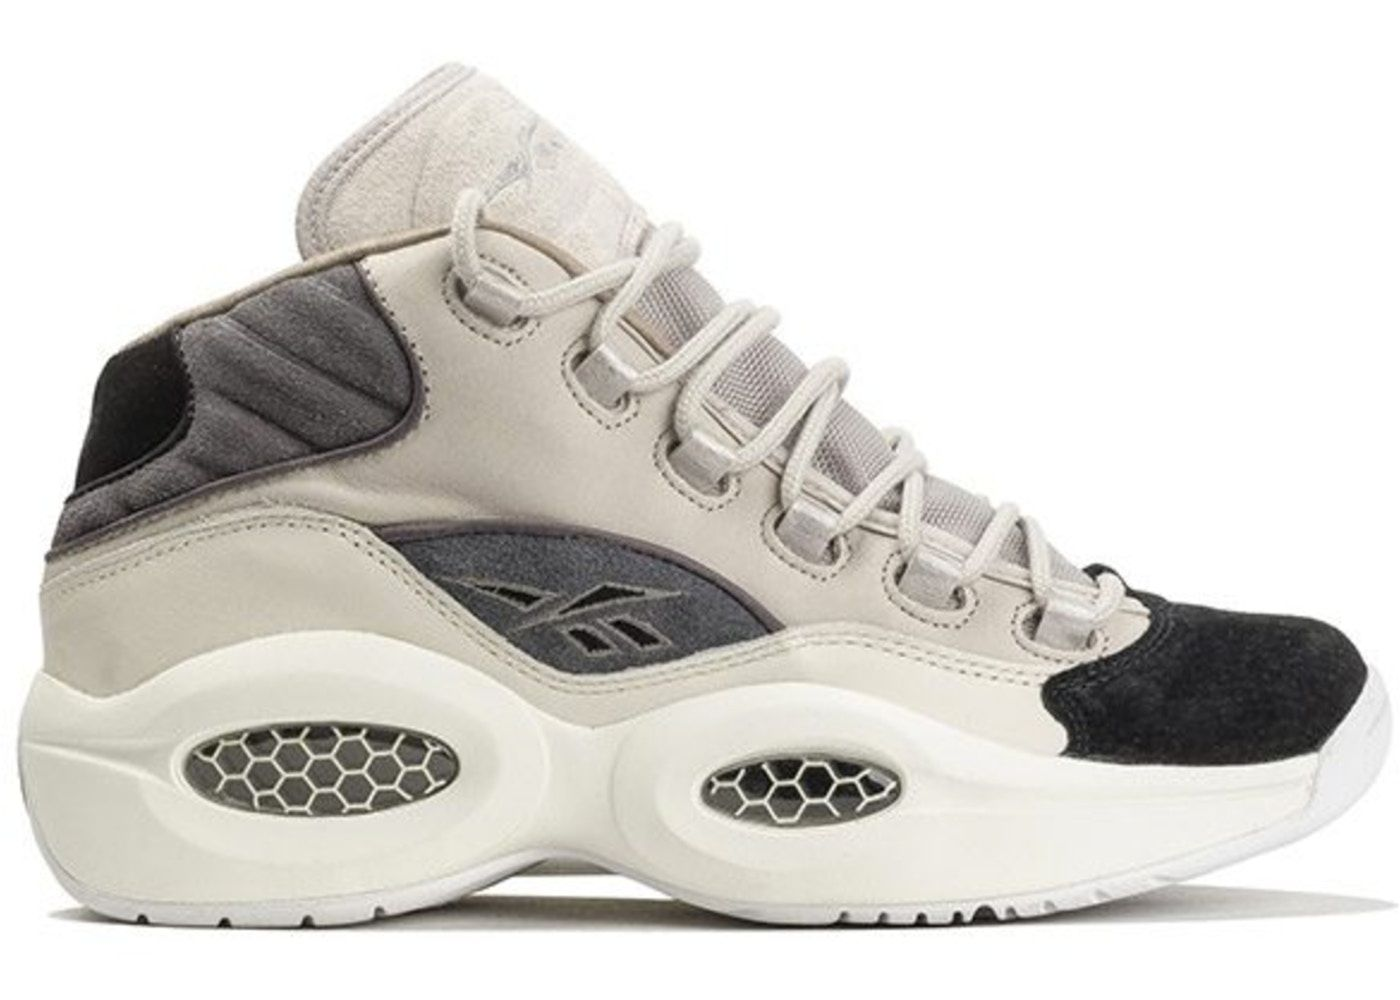 8b1a8f74 Check out the Reebok Question Mid Capsule Anniversary available on StockX